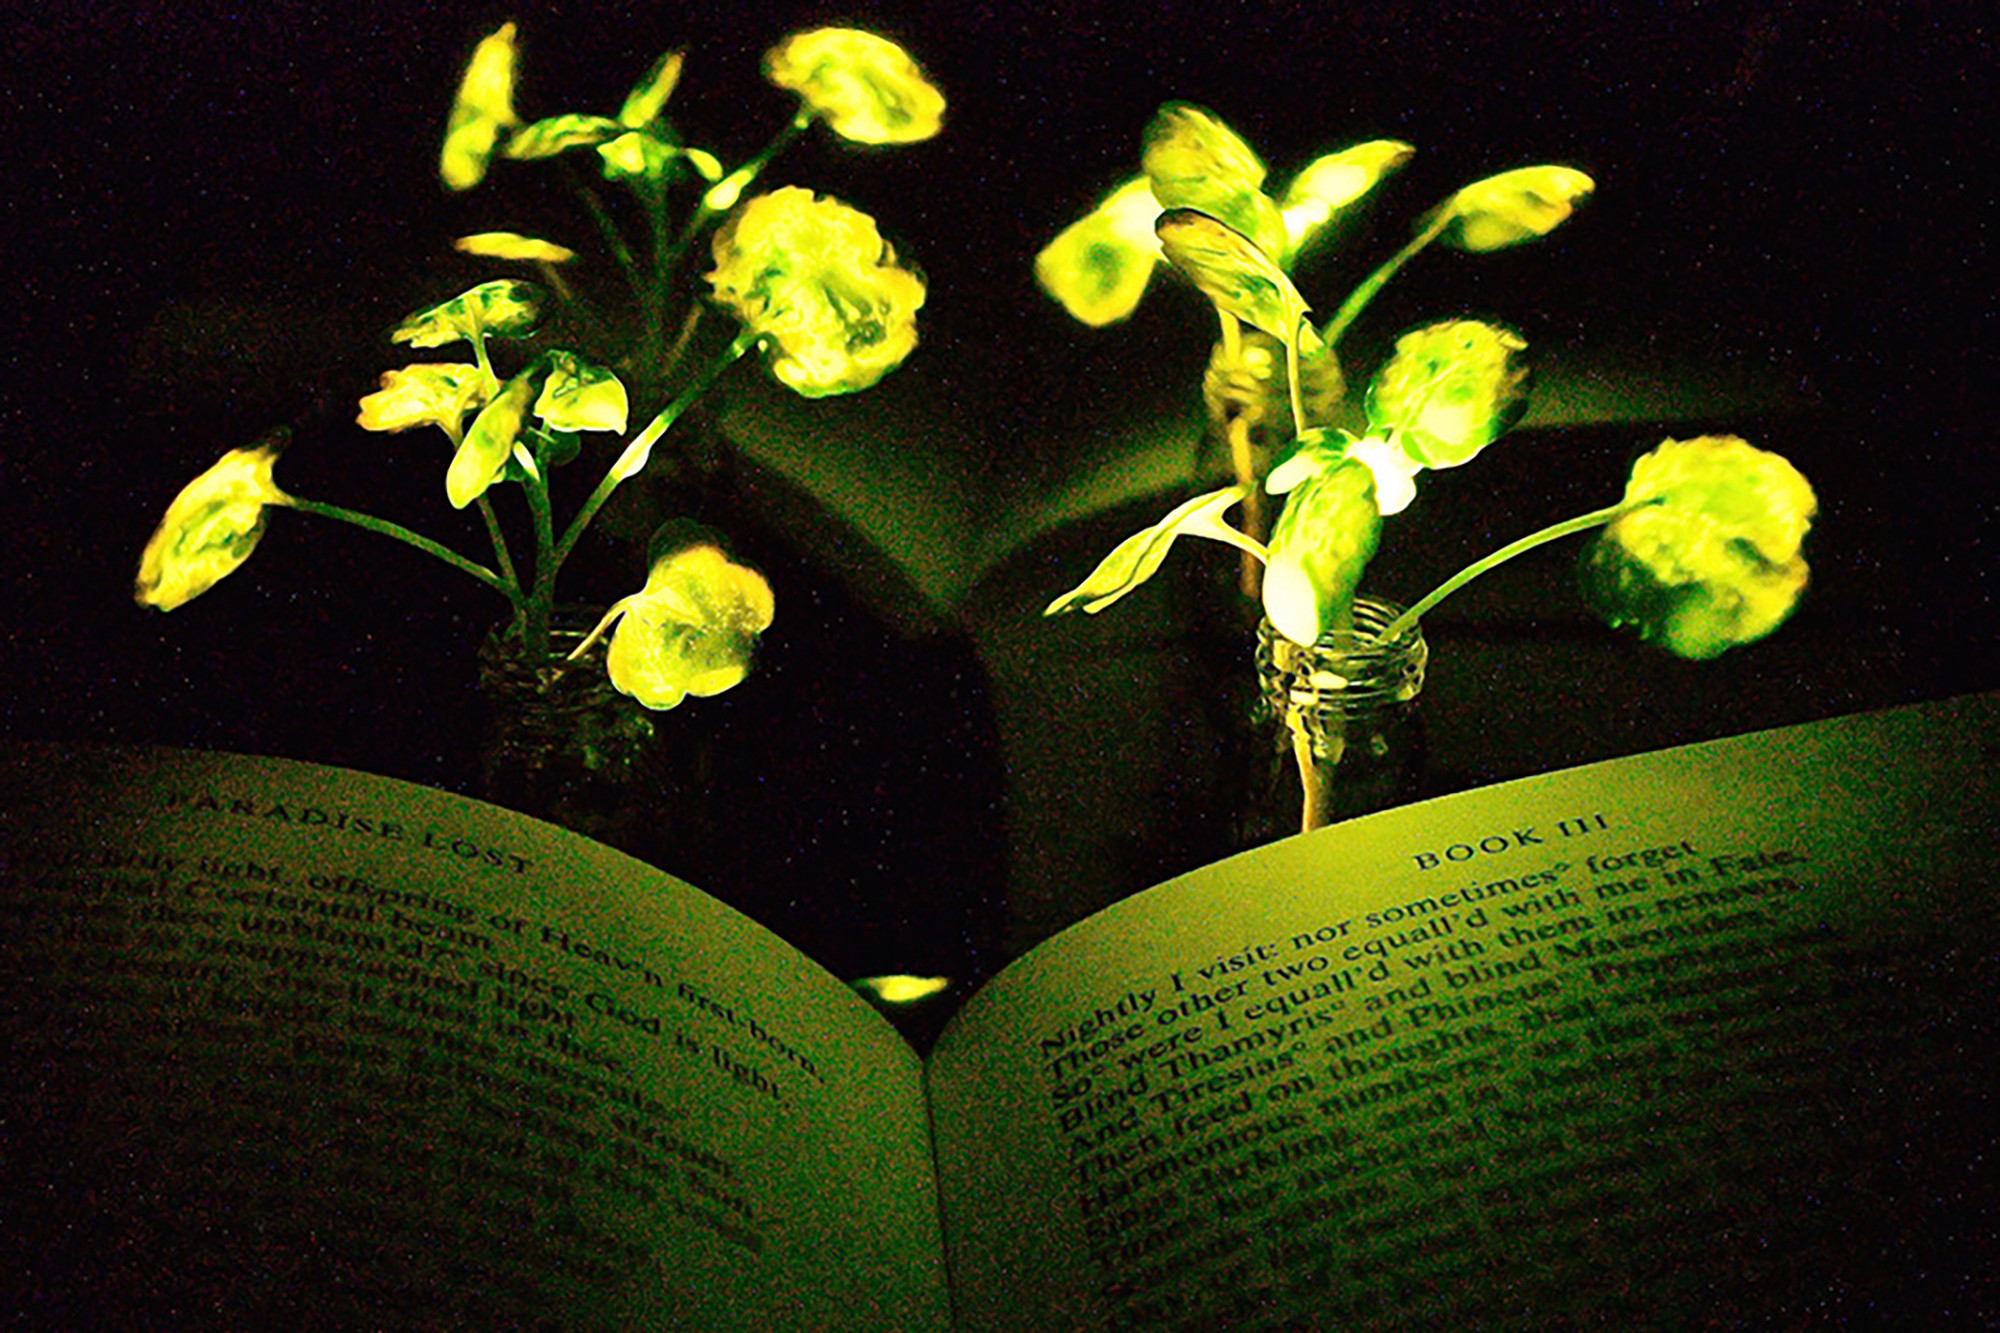 glowing plants 1